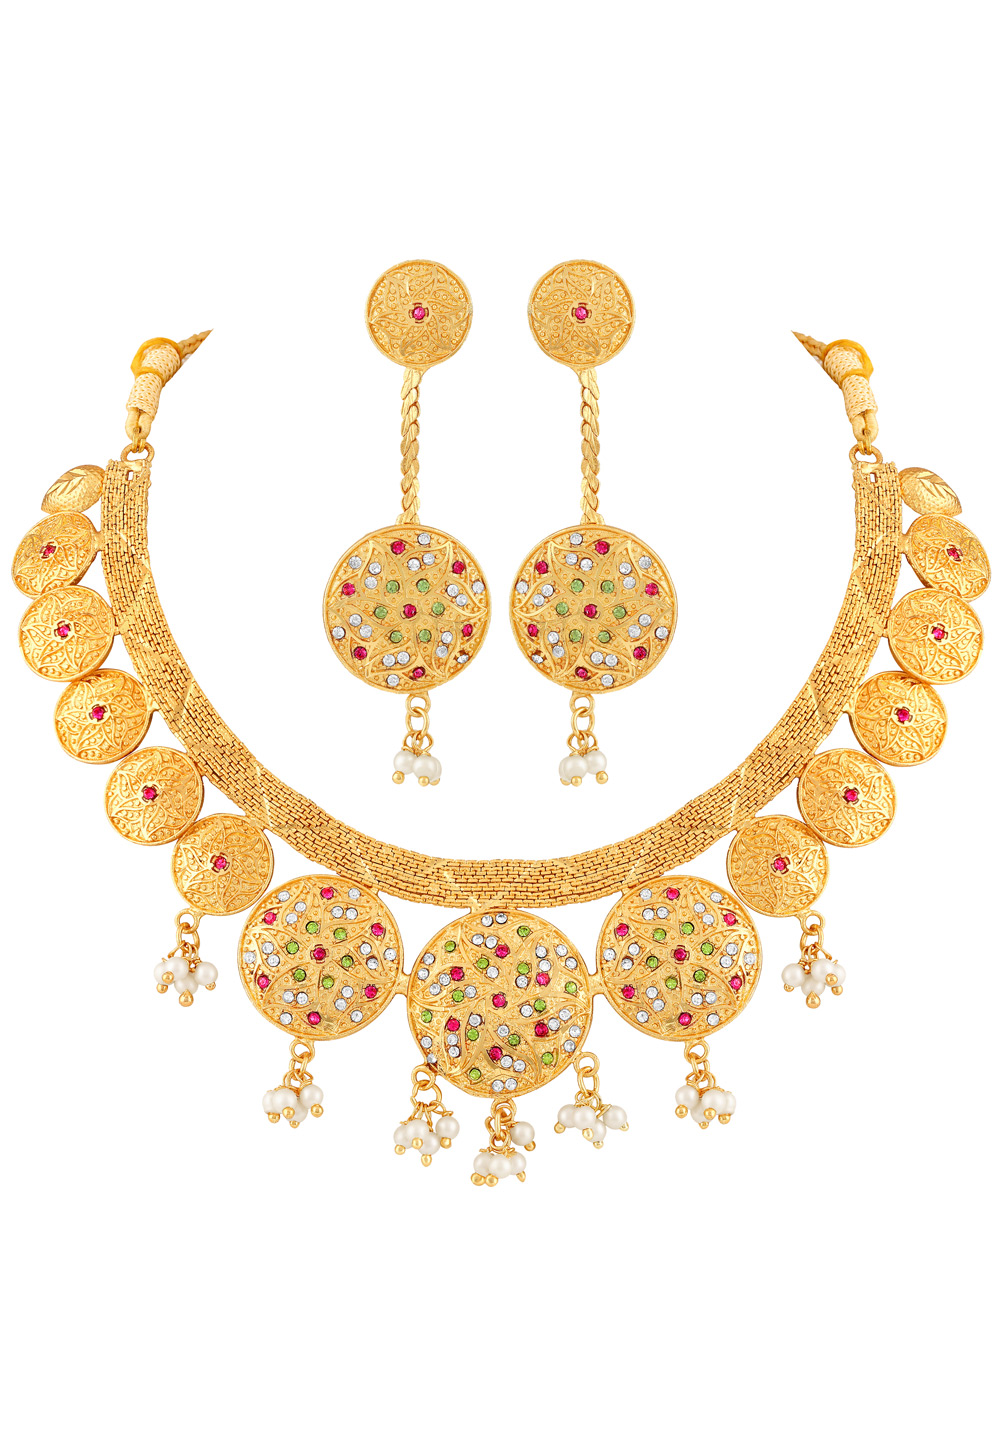 Golden Brass Necklace Set With Earrings 191858